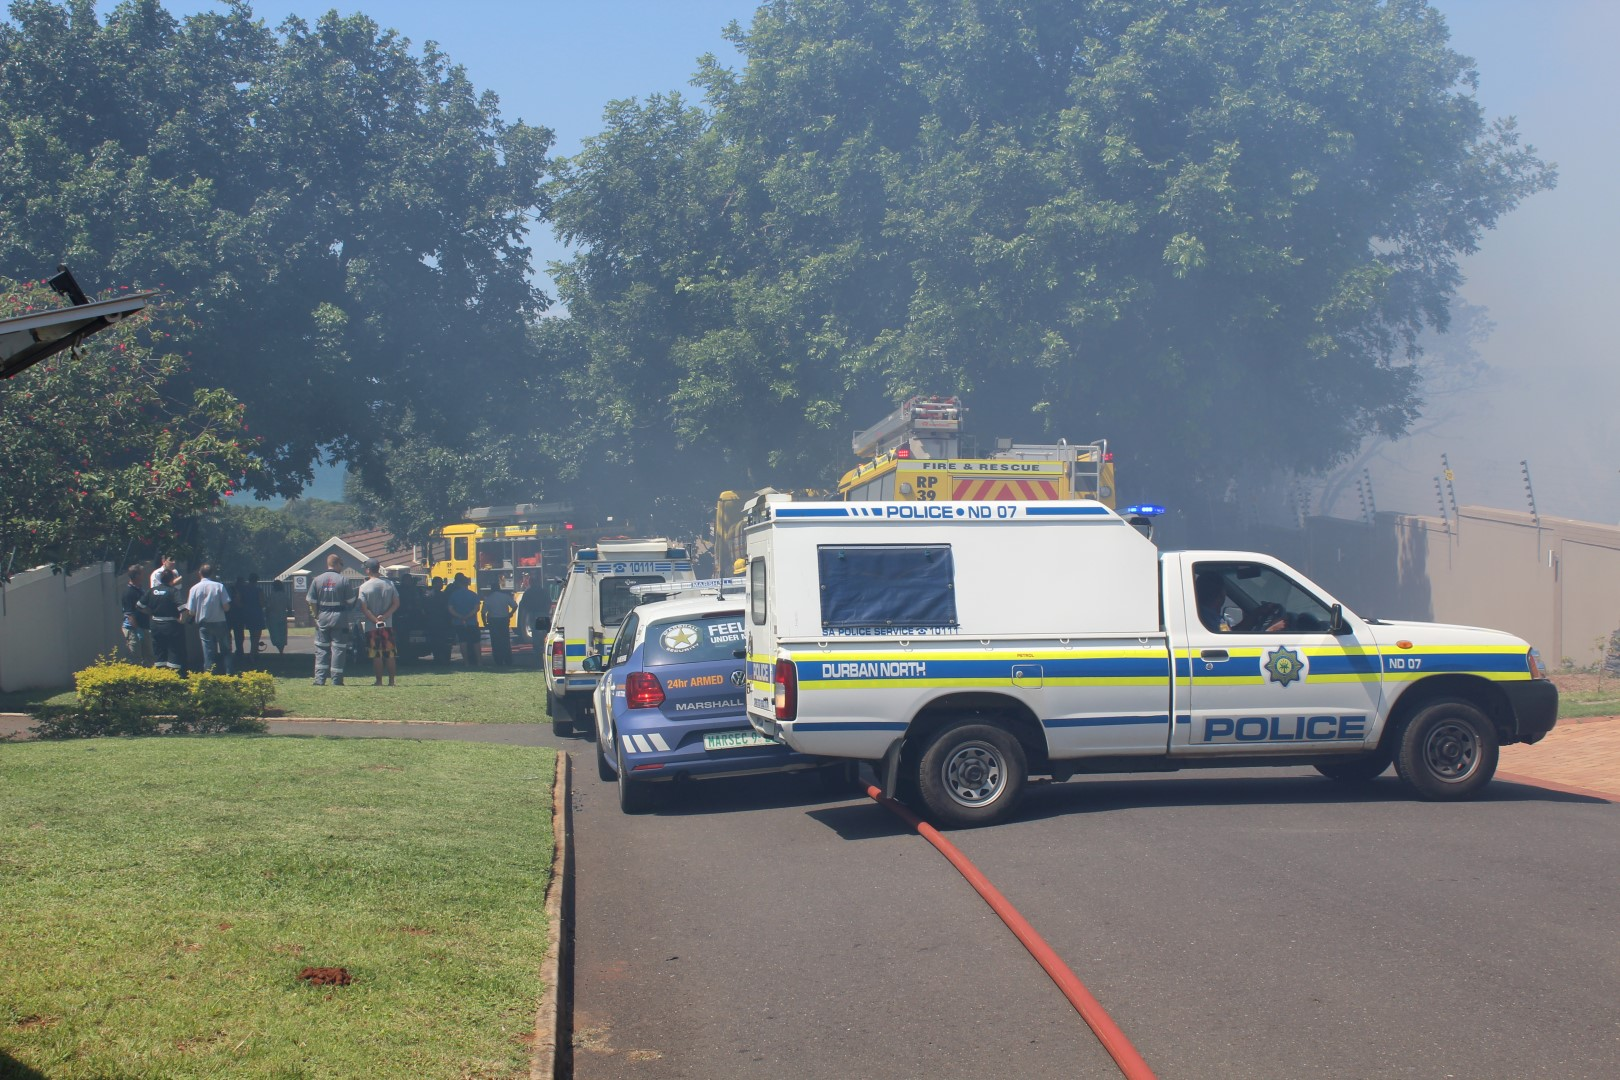 Impala Crescent was closed while firefighters battled the blaze.